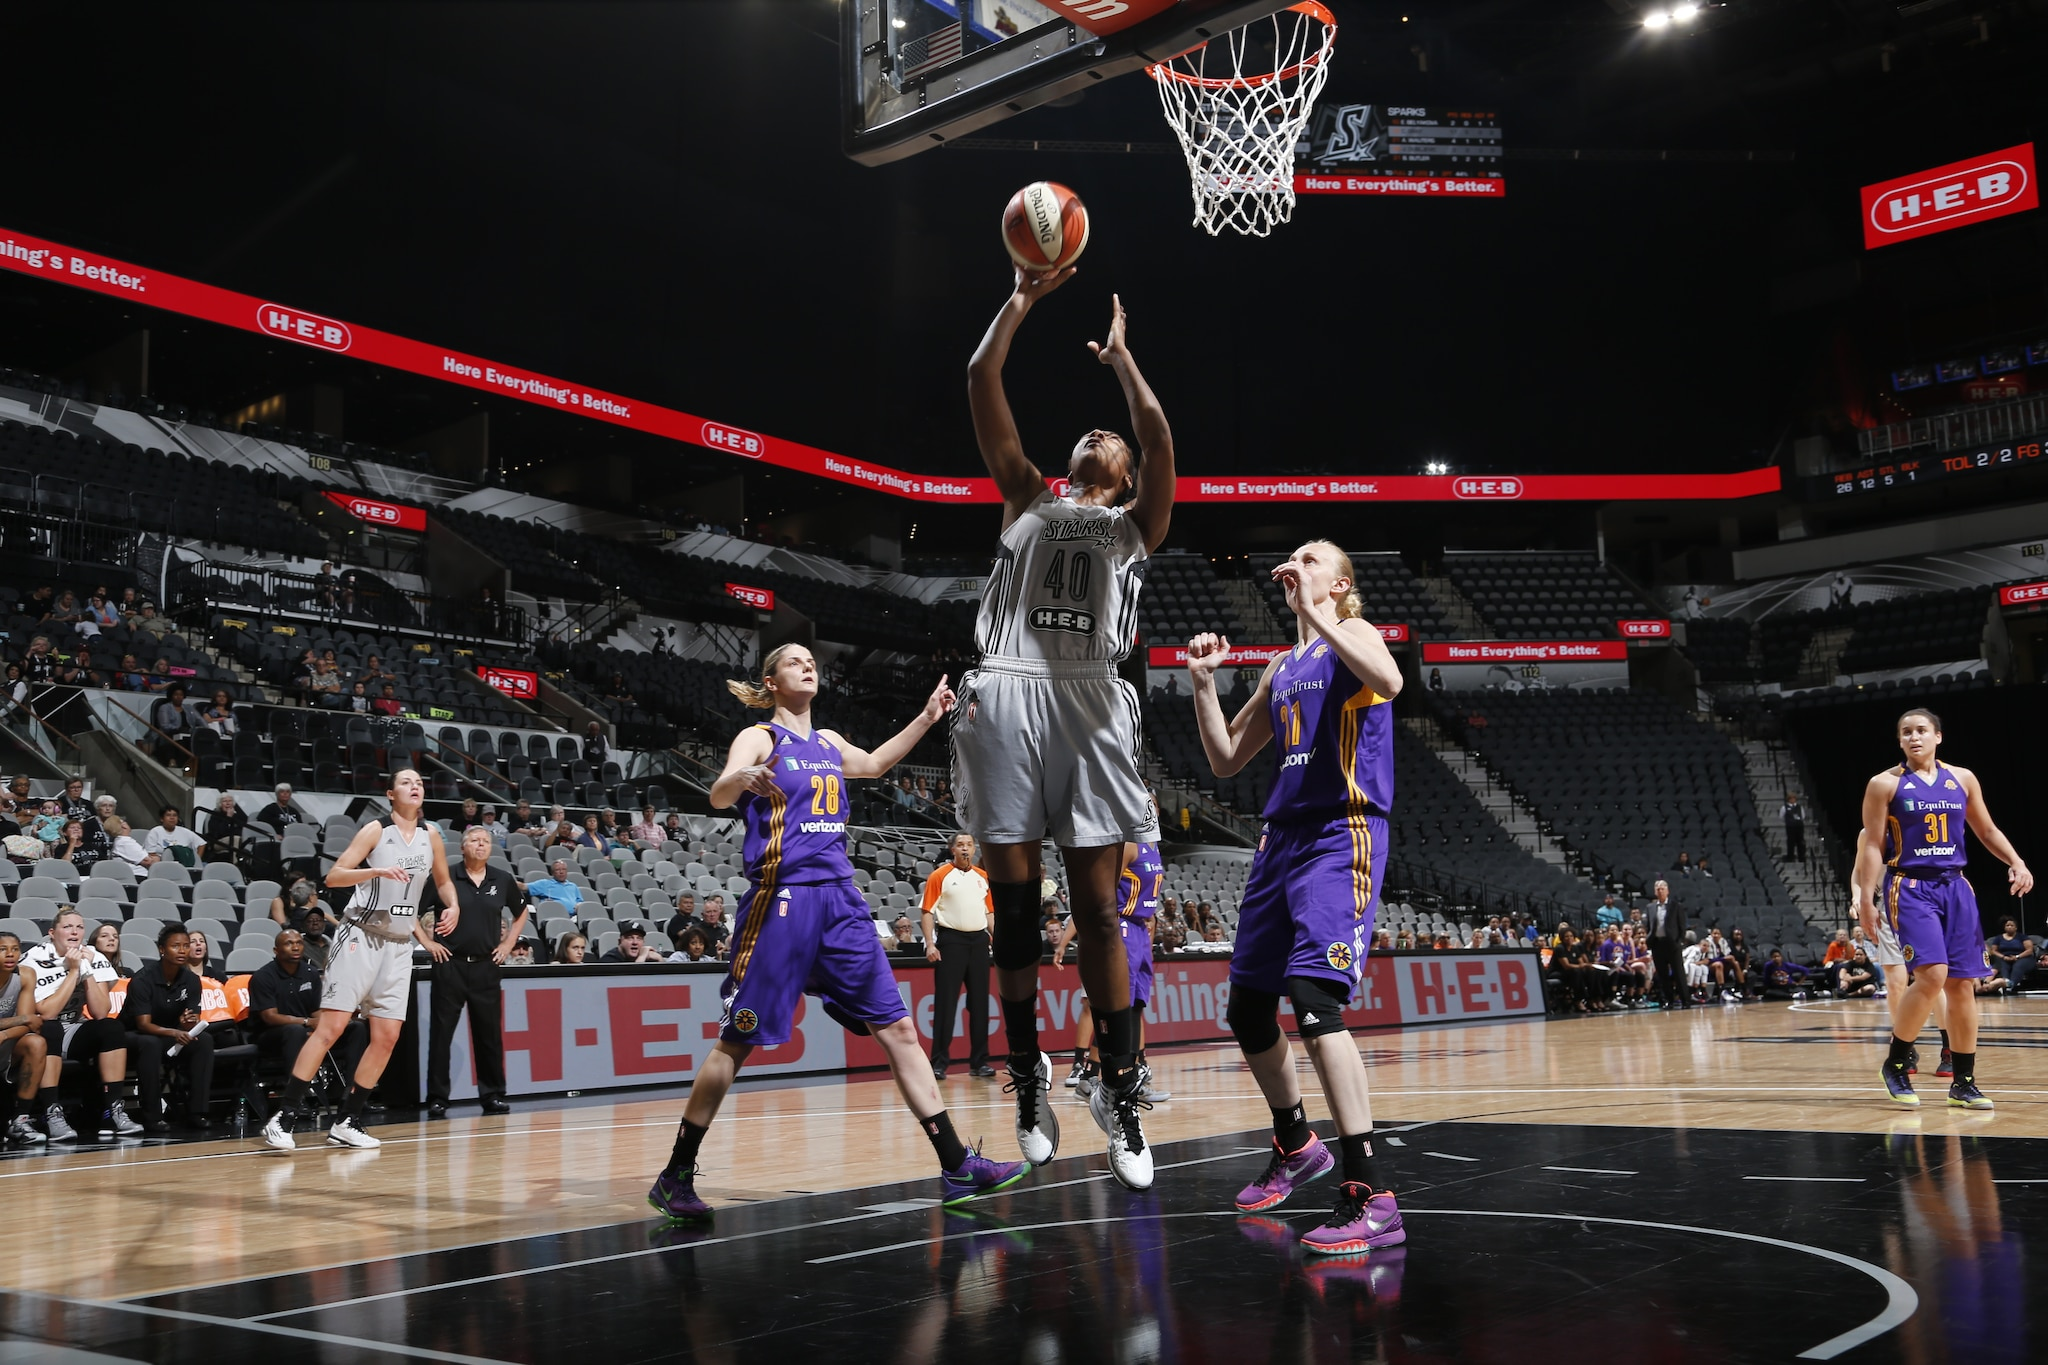 SAN ANTONIO, TX - MAY 9:  Kayla Alexander #40 of the San Antonio Stars shoots the ball against the Los Angeles Sparks on May 9, 2016 at the AT&T Center in San Antonio, Texas. NOTE TO USER: User expressly acknowledges and agrees that, by downloading and or using this photograph, user is consenting to the terms and conditions of the Getty Images License Agreement. Mandatory Copyright Notice: Copyright 2016 NBAE (Photos by Chris Covatta/NBAE via Getty Images)